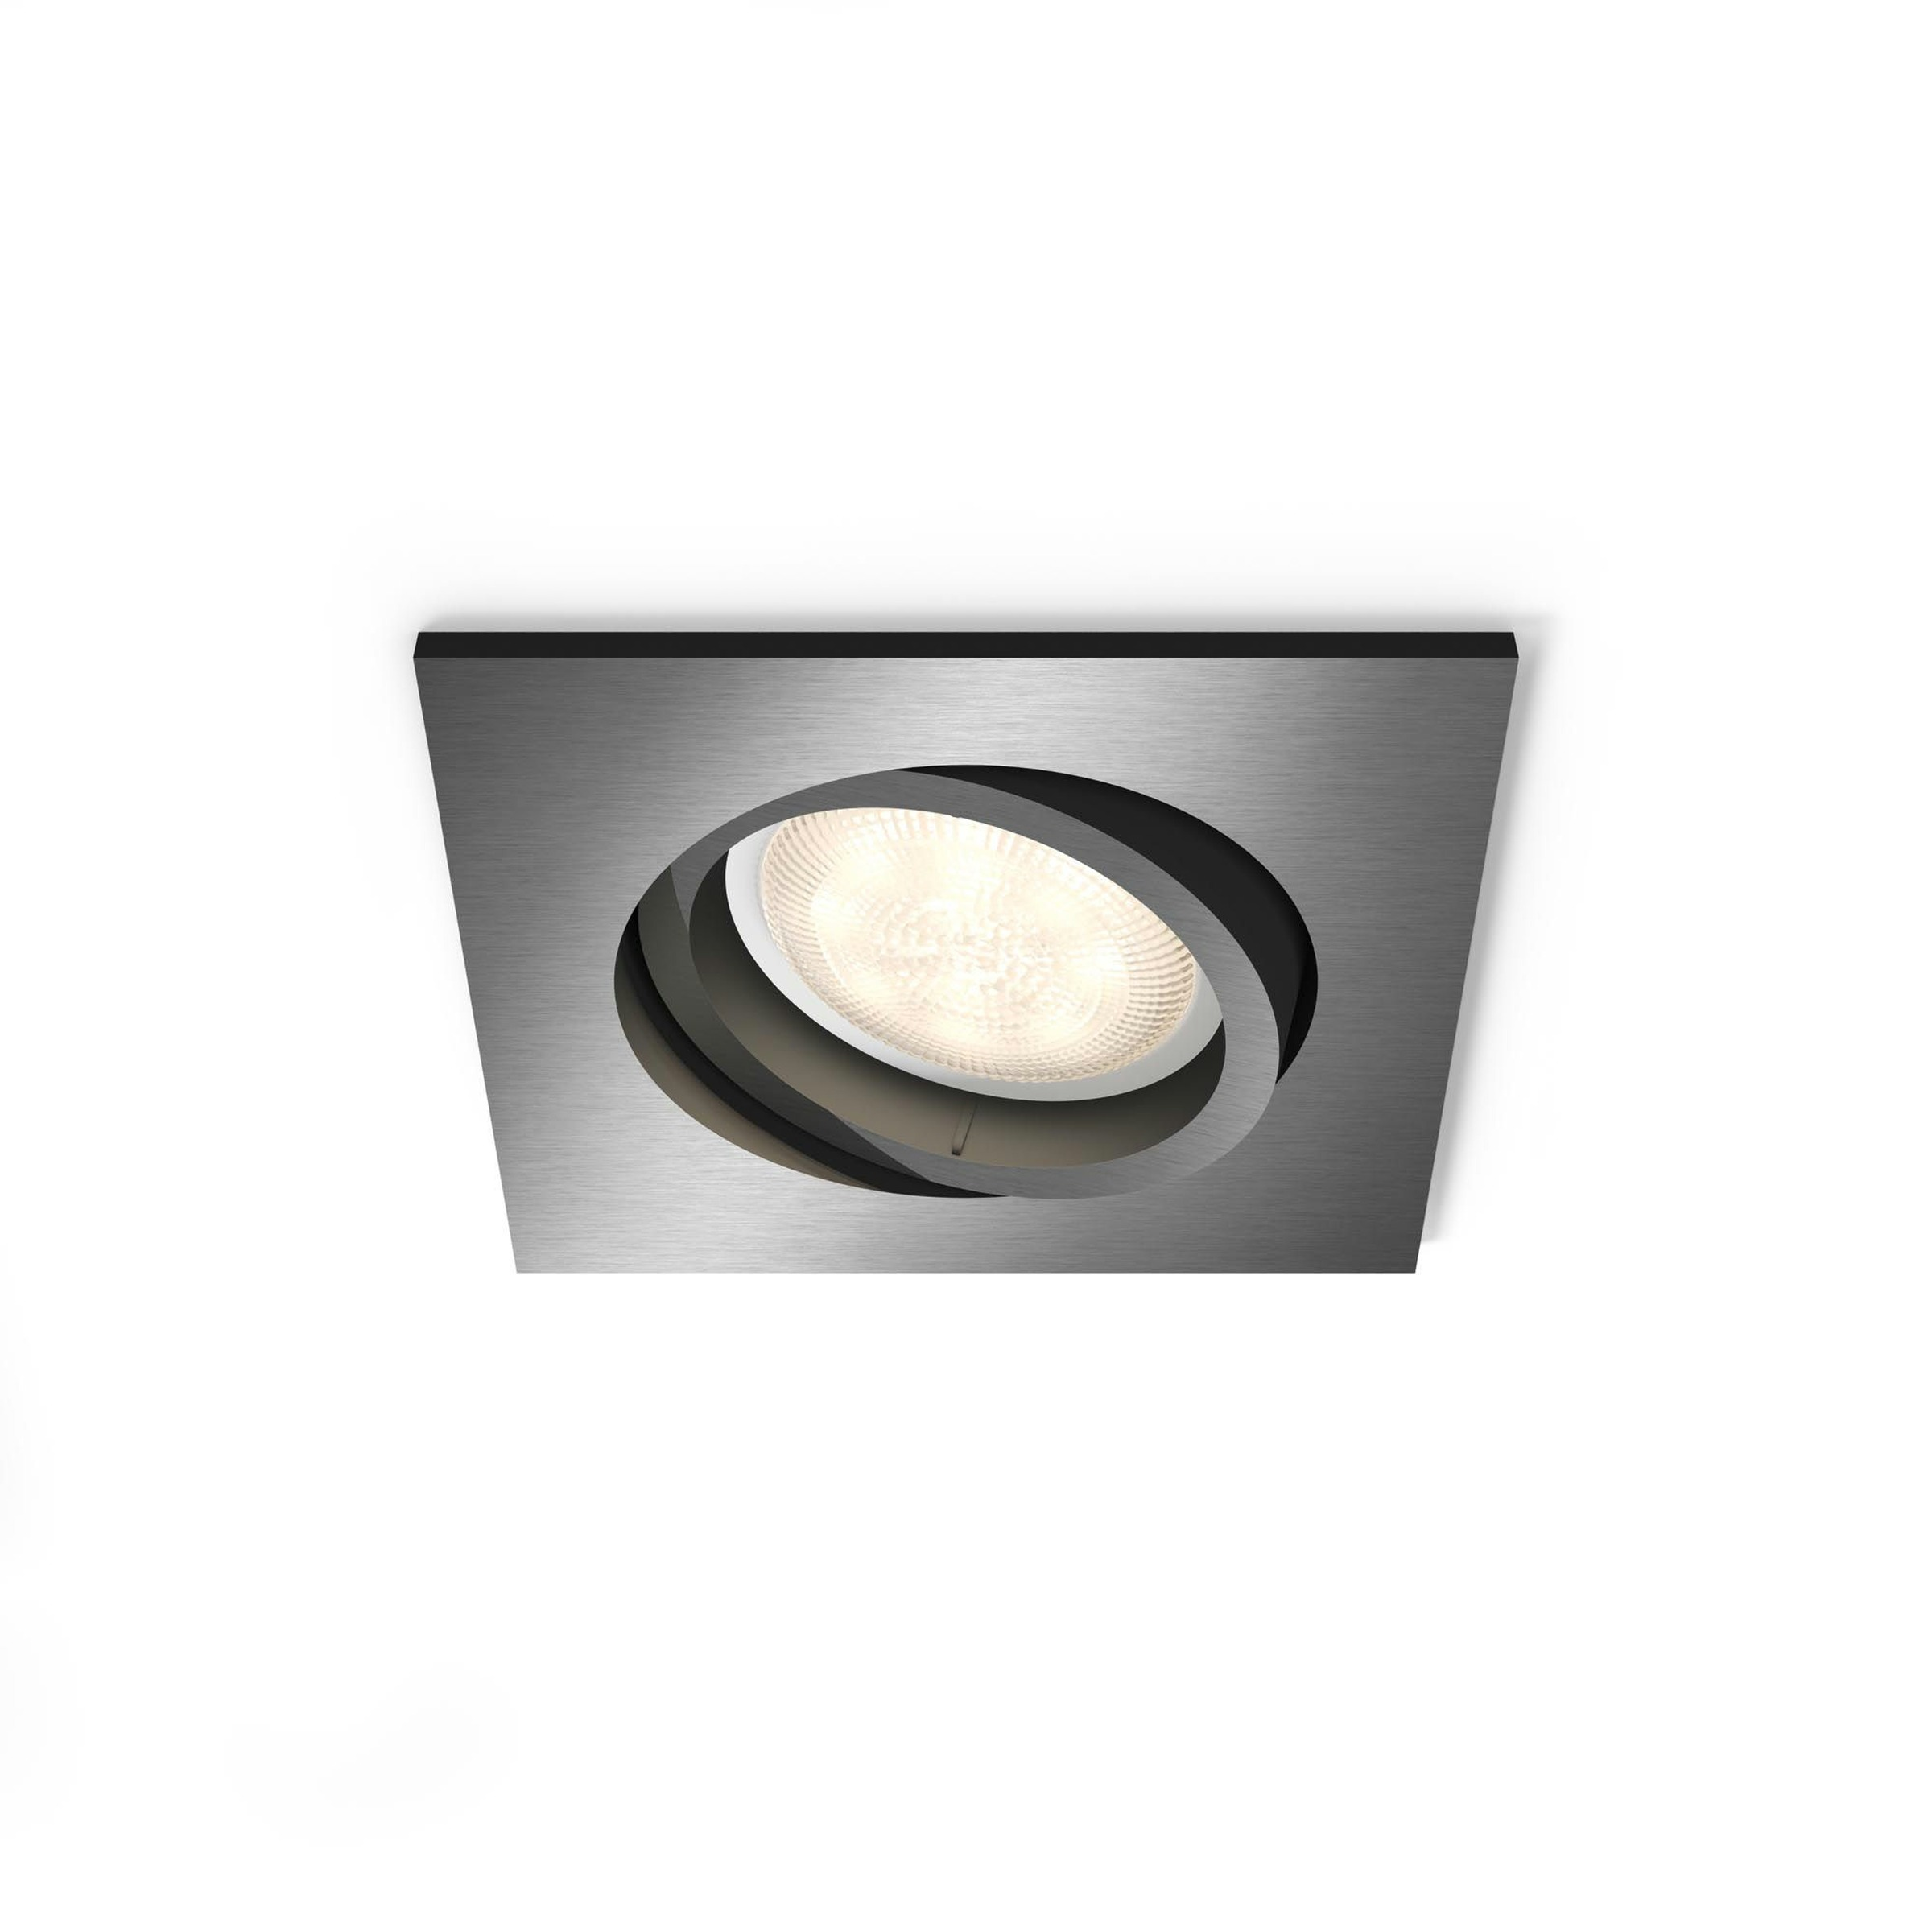 Philips Lighting Shellbark 5039199P0 LED-inbouwlamp 4.5 W Warm-wit Antraciet